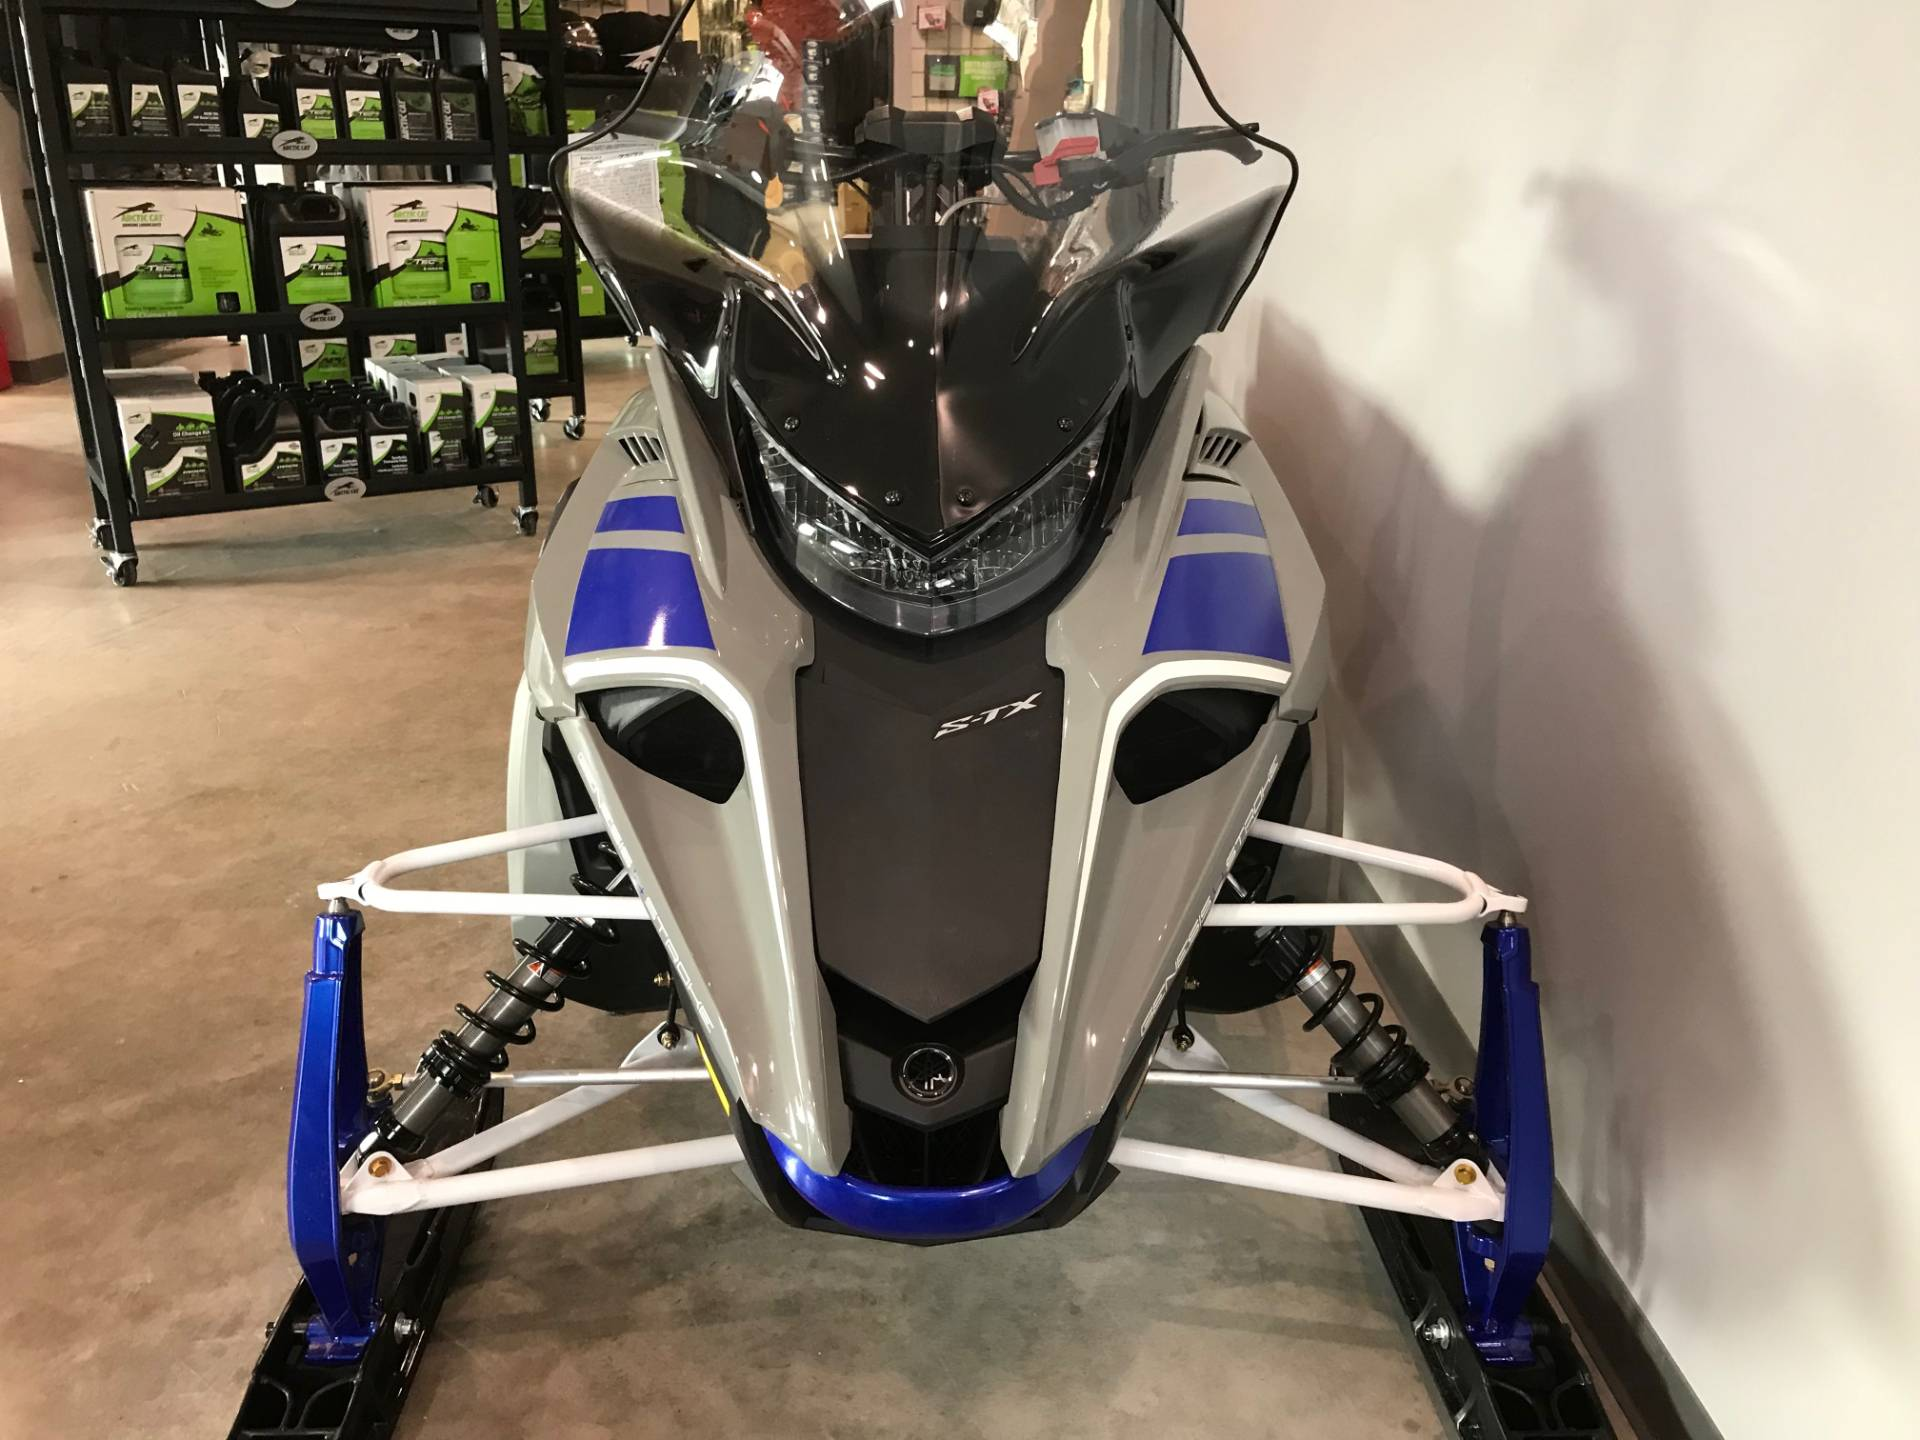 2018 Yamaha Sidewinder S-TX DX 137 in Hancock, Michigan - Photo 2